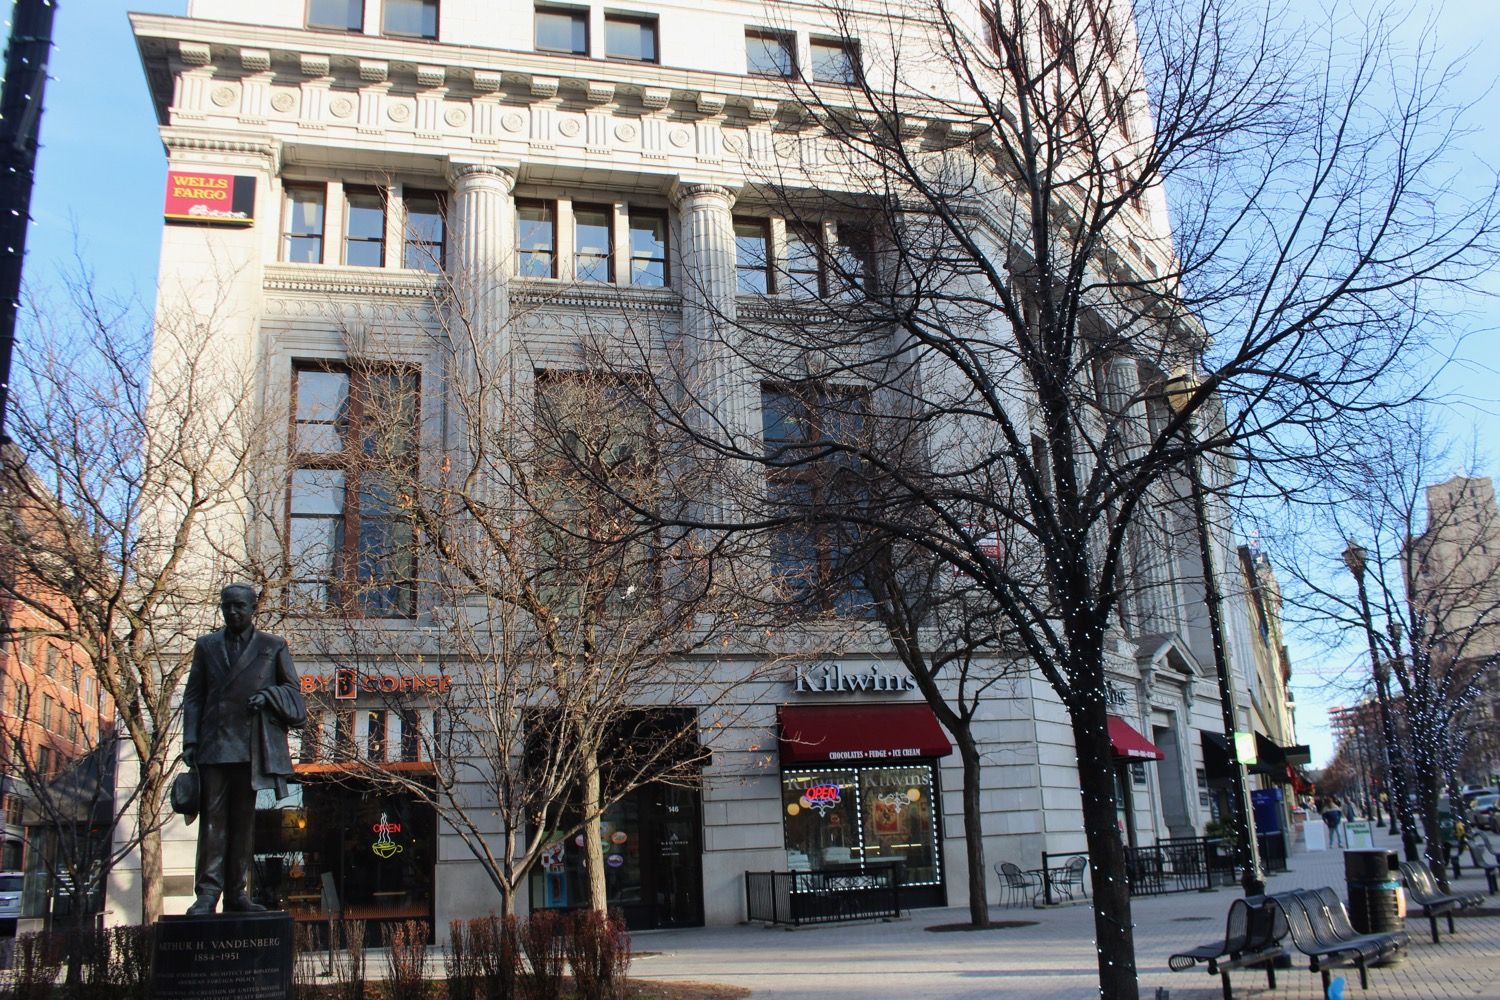 Original portion of the Grand Rapids National Bank on Monroe Center built in 1914. McKay Tower addition shown below.